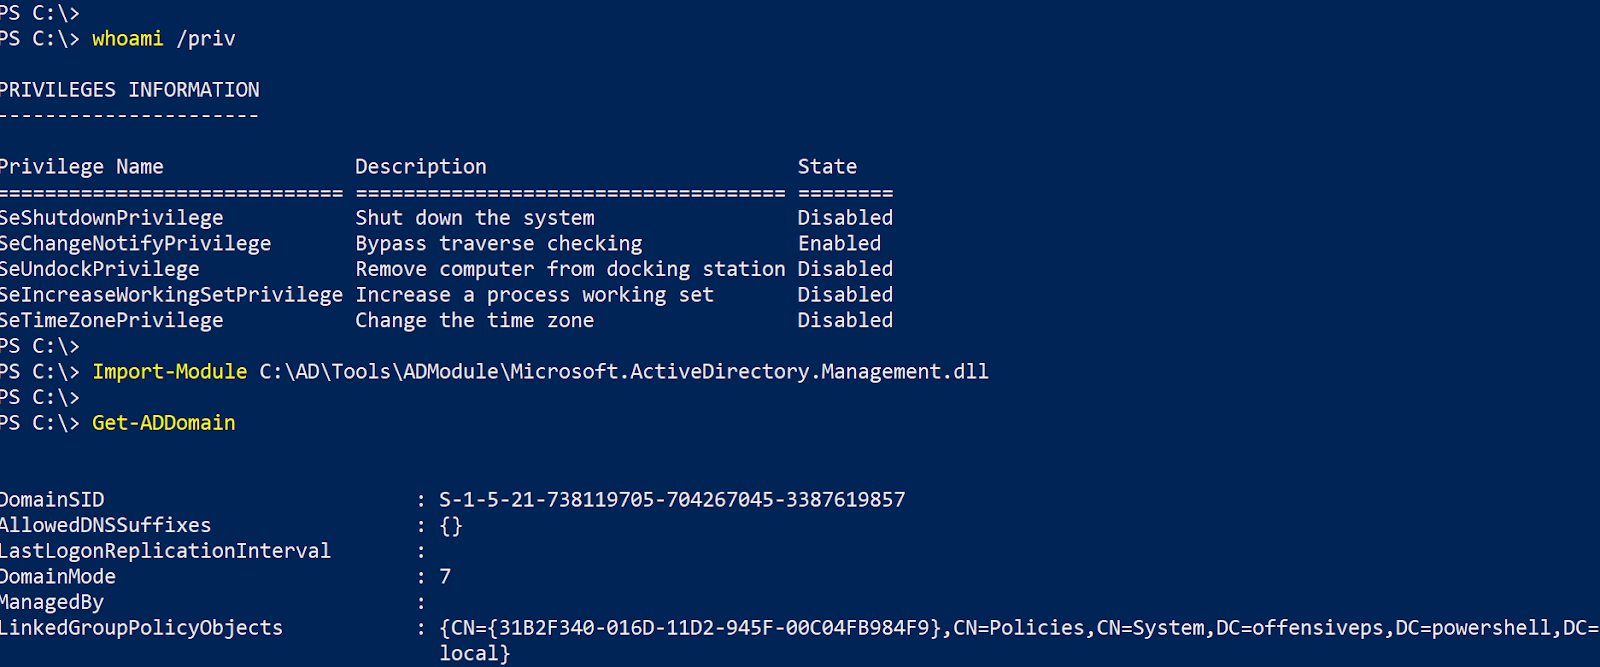 Using ActiveDirectory module for Domain Enumeration from